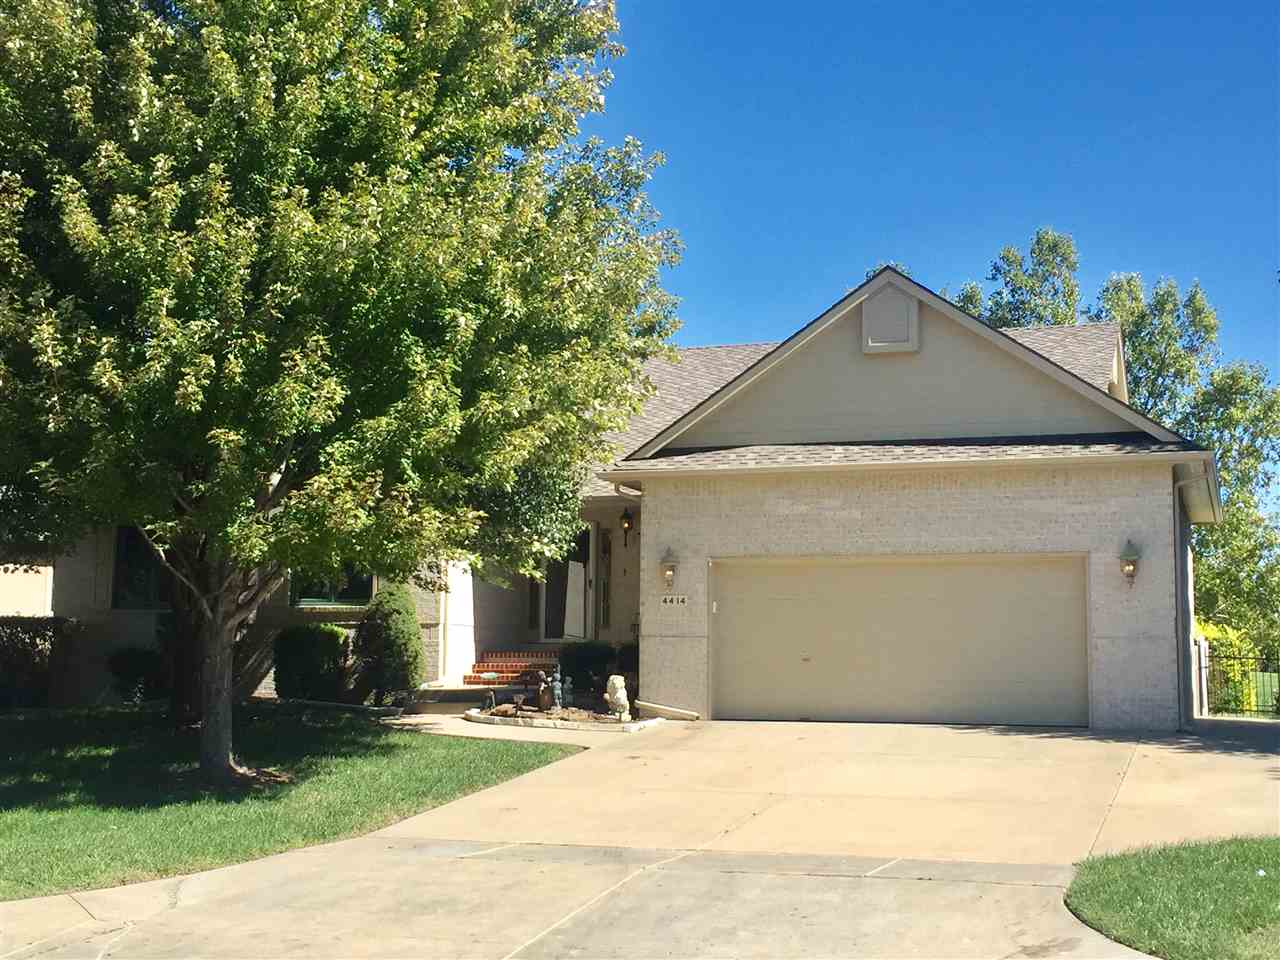 4414 N Spyglass Circle, Wichita, KS 67226